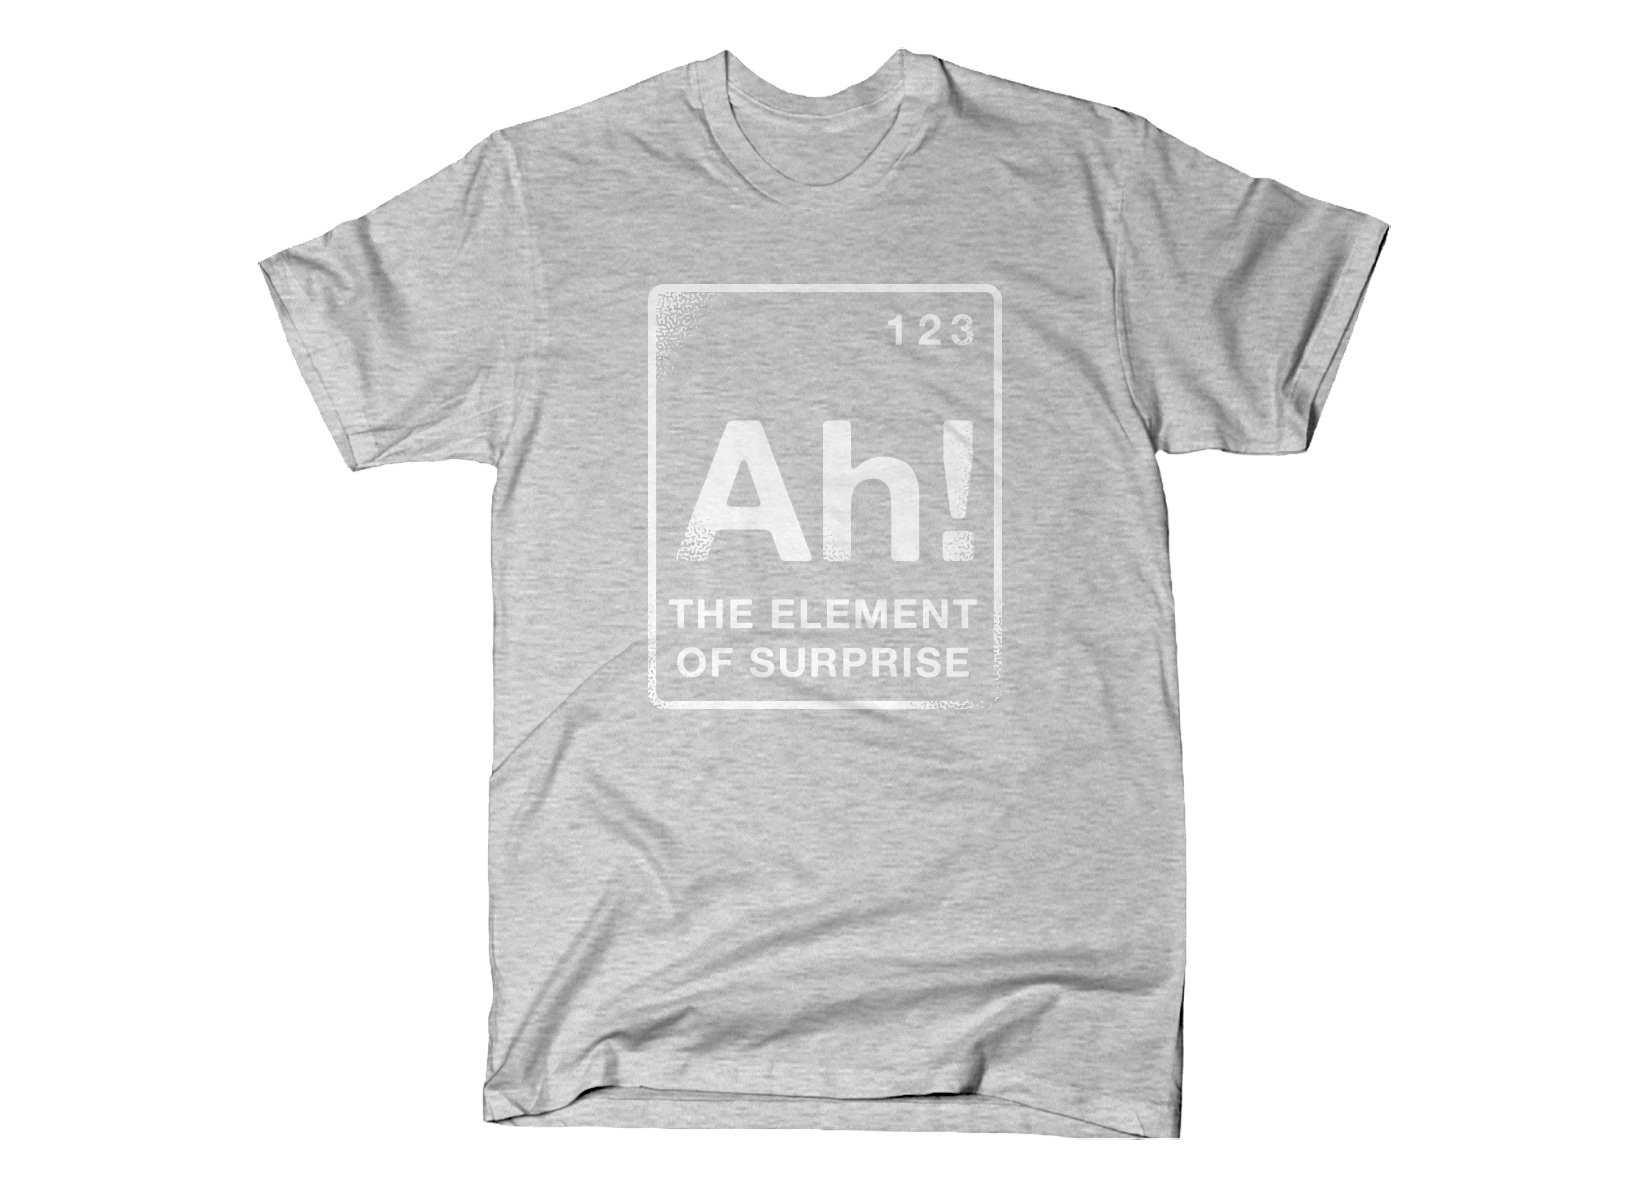 The Element Of Surprise on Mens T-Shirt